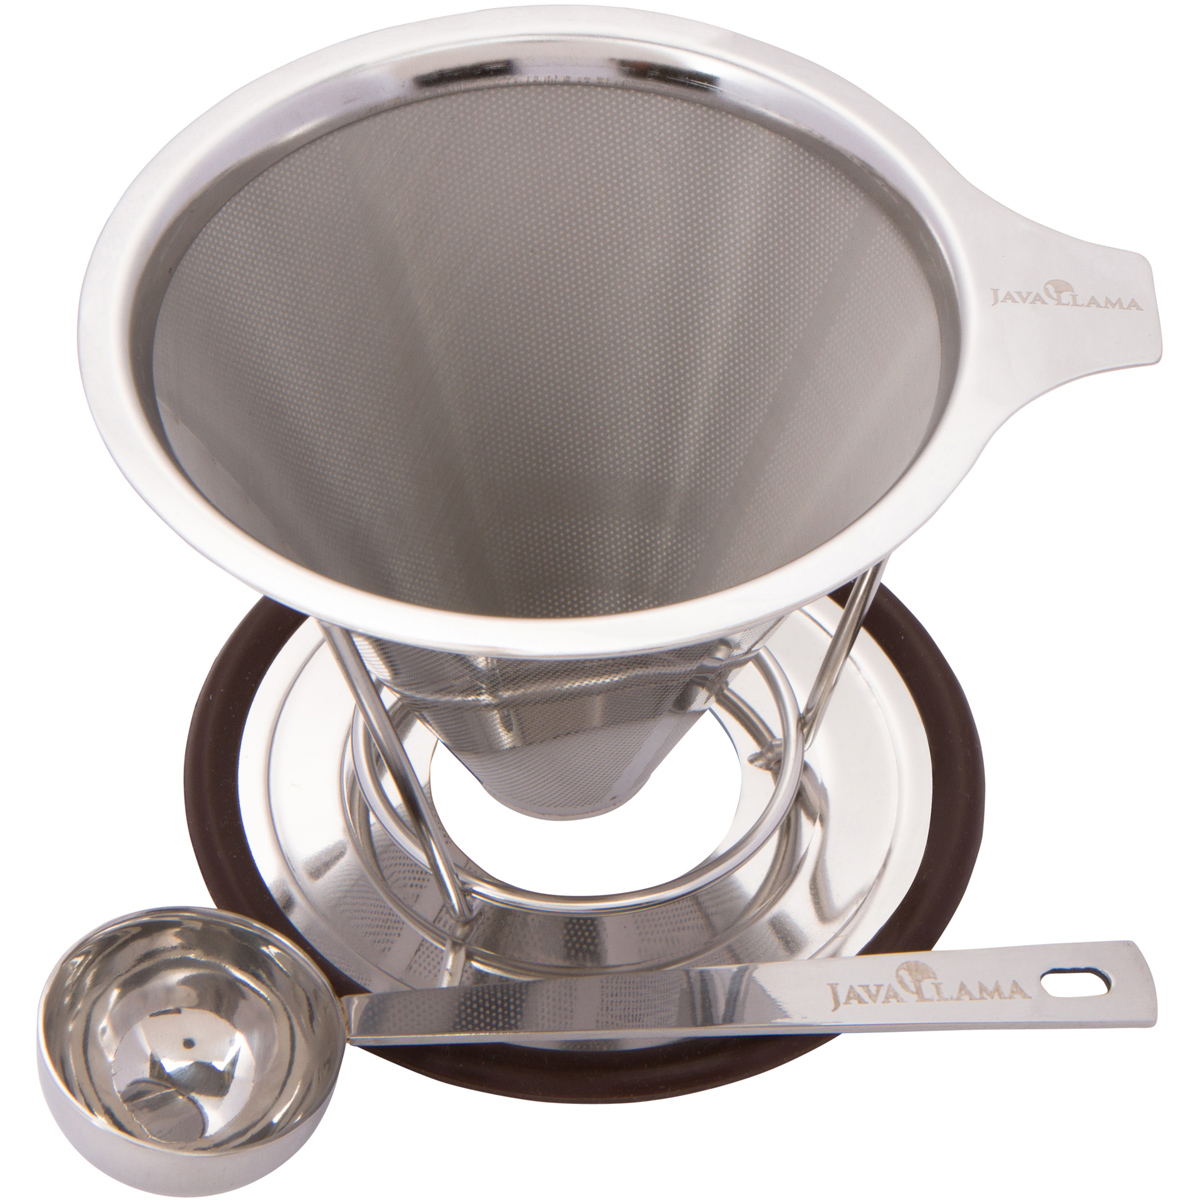 Pour Over Coffee Maker Stainless Steel : Java Llama Stainless Steel Pour Over Coffee Maker Review mylifeminimalized